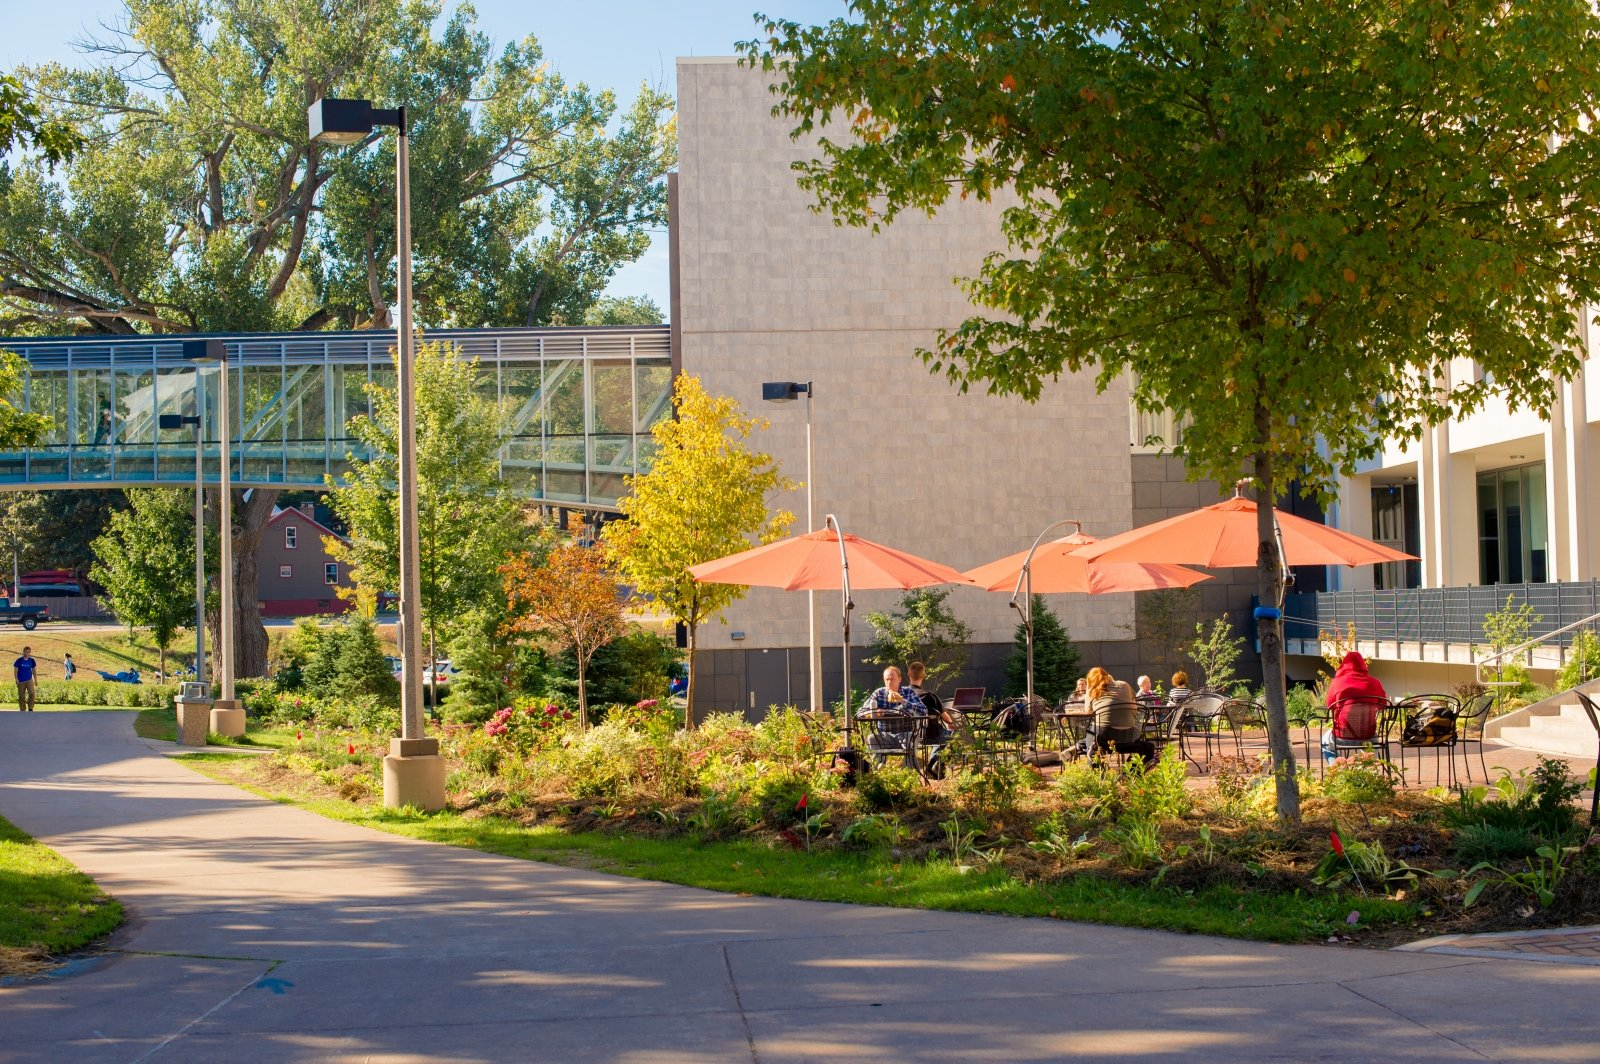 Outdoor library cafe. Center of campus.